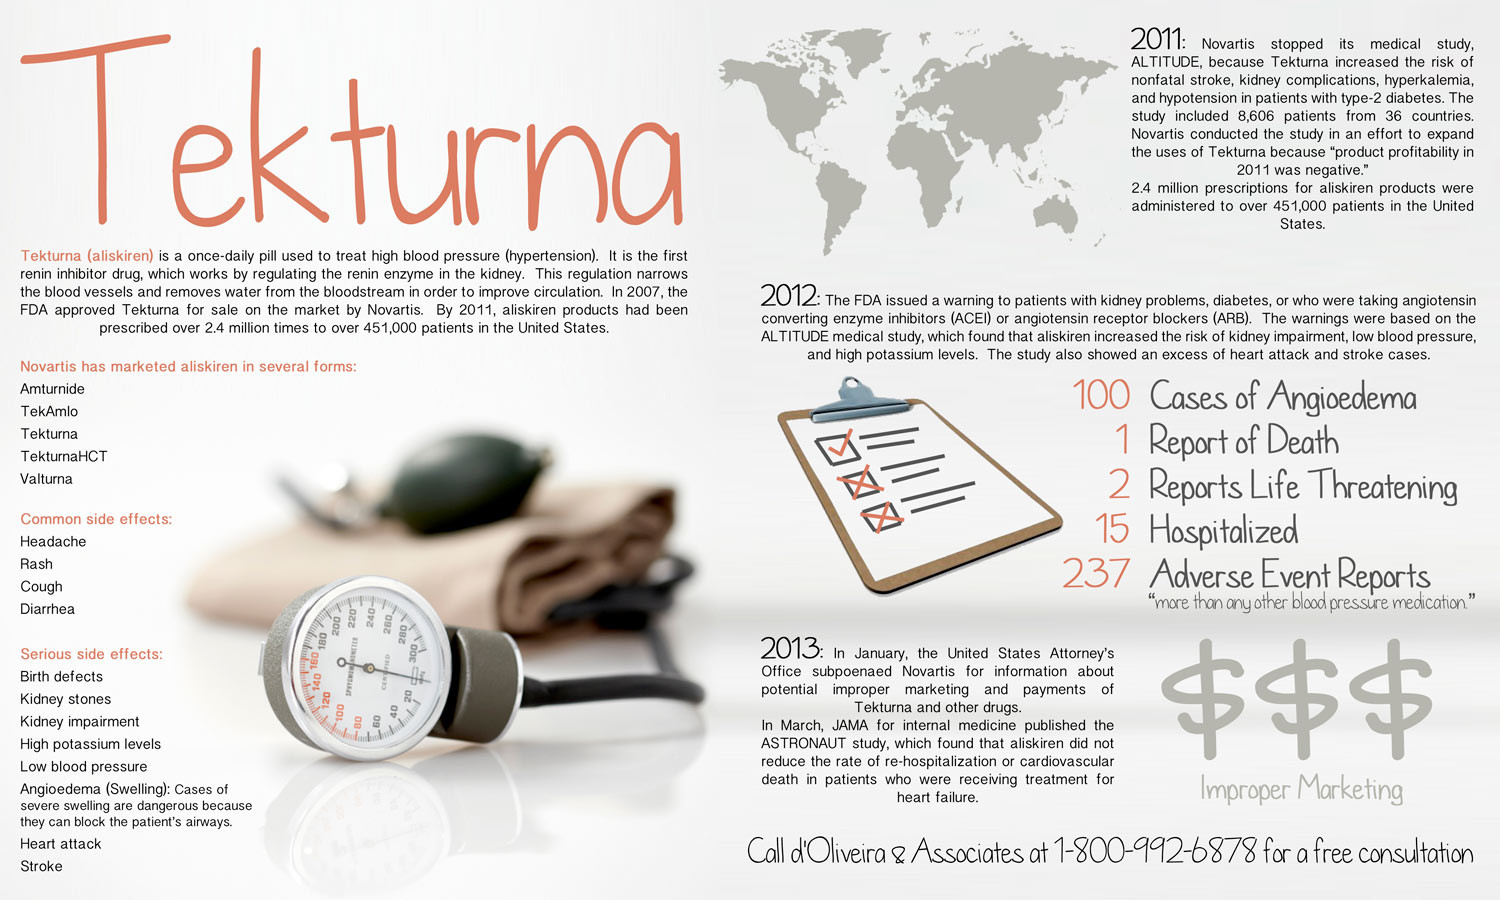 Tekturna Side Effects Infographic